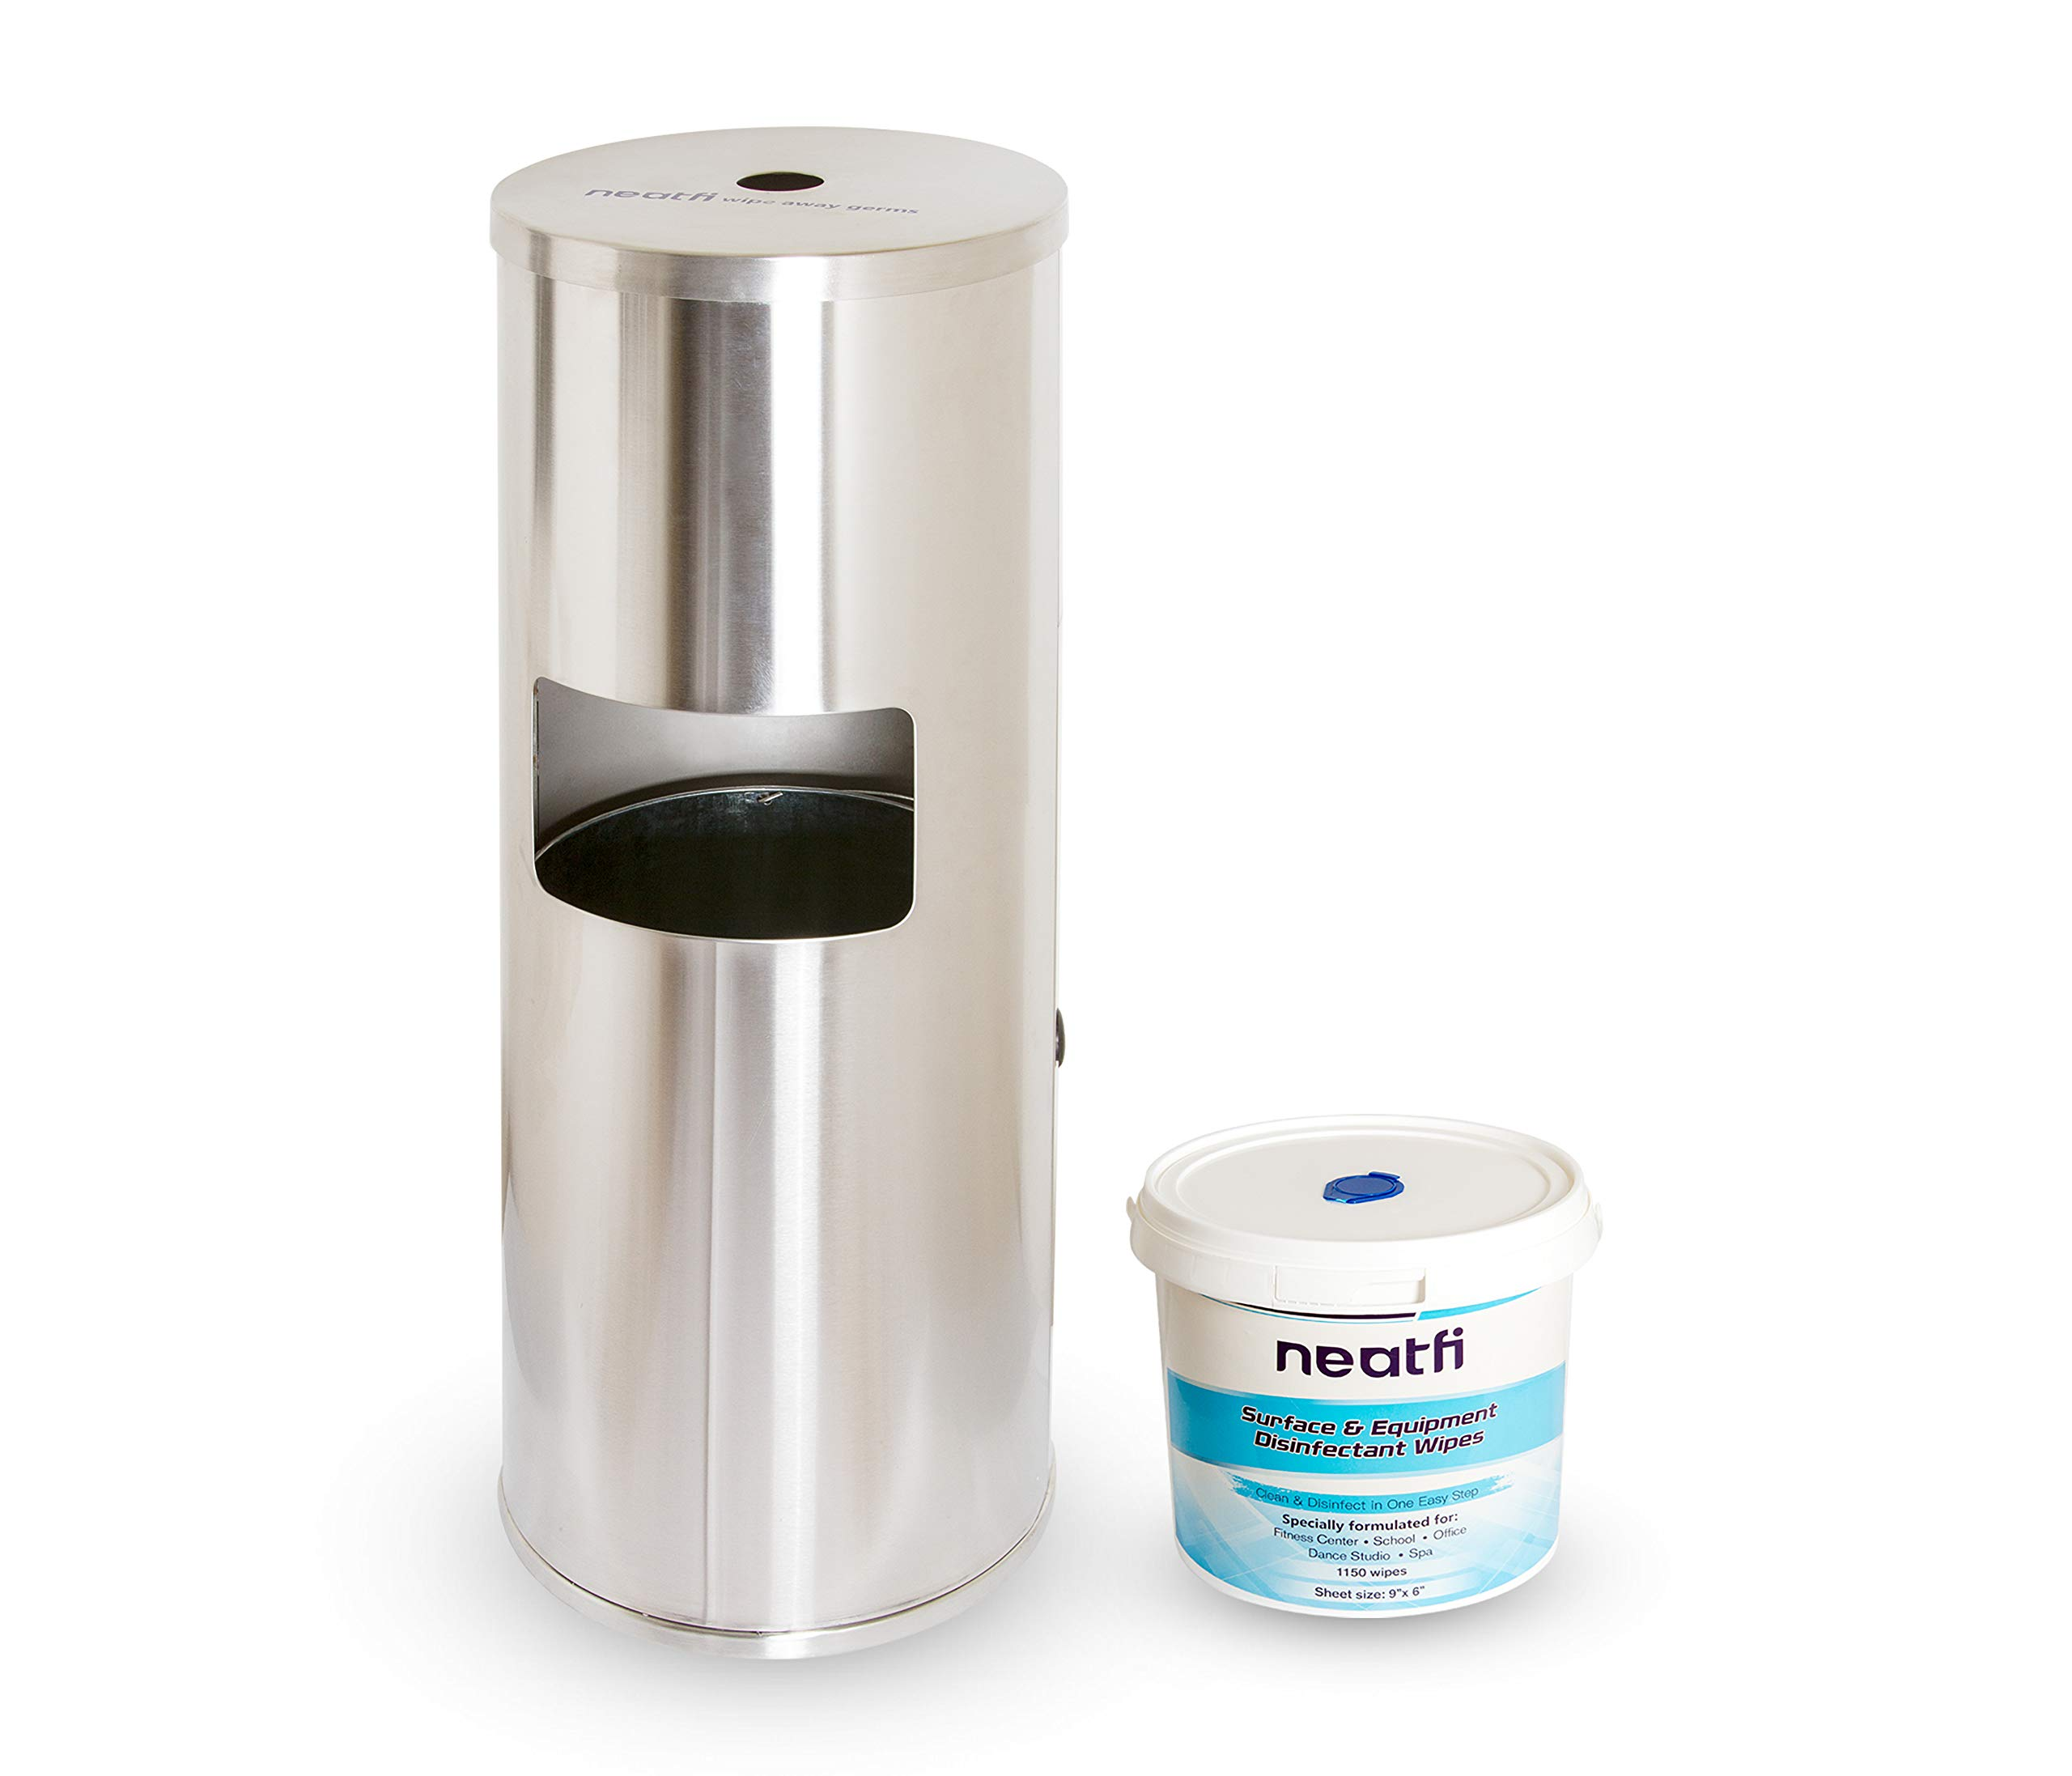 NeatFi Floor Standing Stainless Steel Gym Wipe Dispenser with High Capacity Built-in Trash Can and Easy Back Door Access + Wipe Holding Bucket